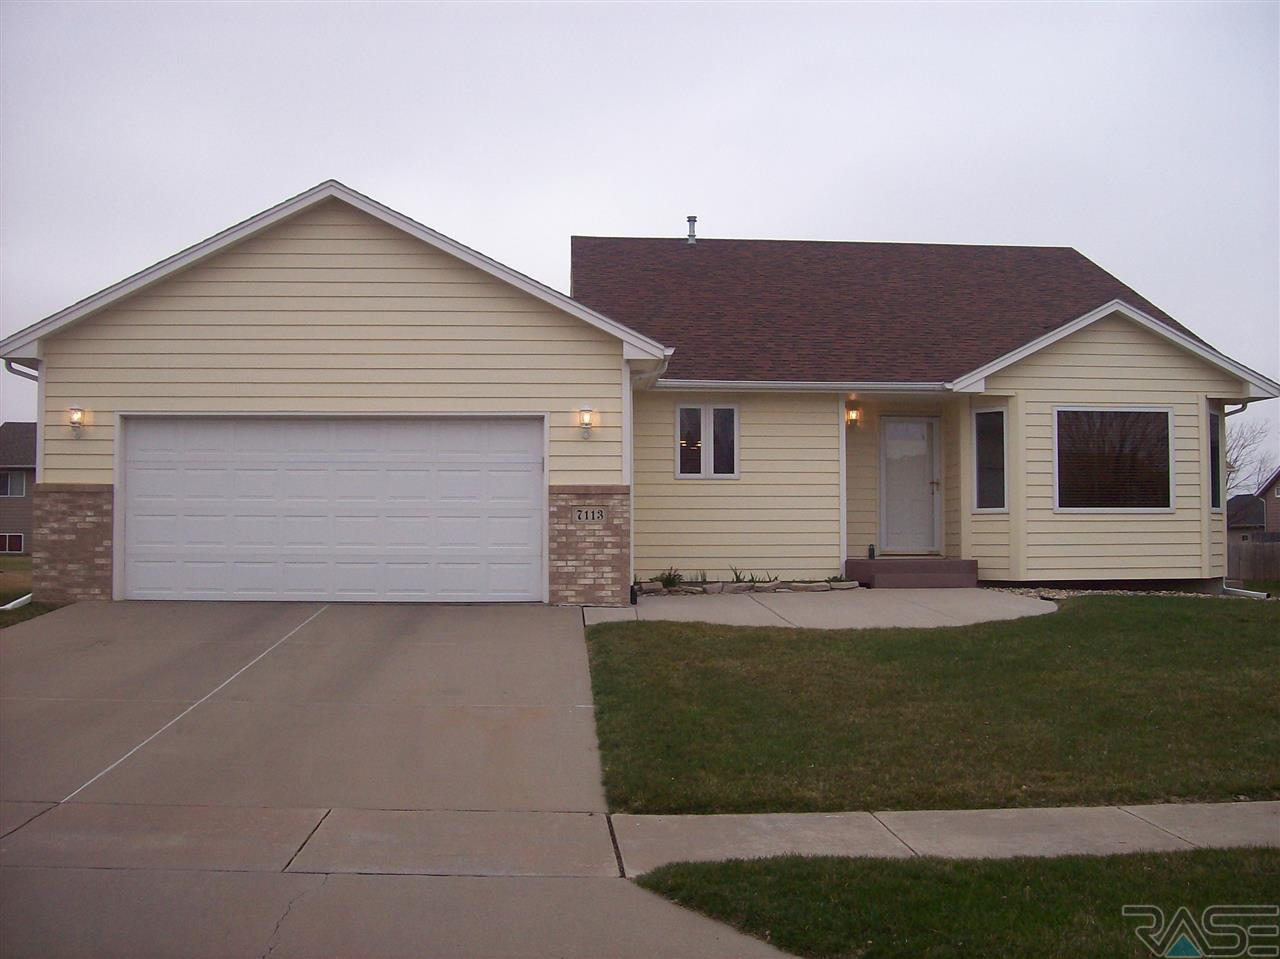 7113 S Connie Ave, SIOUX FALLS, 57108, SD